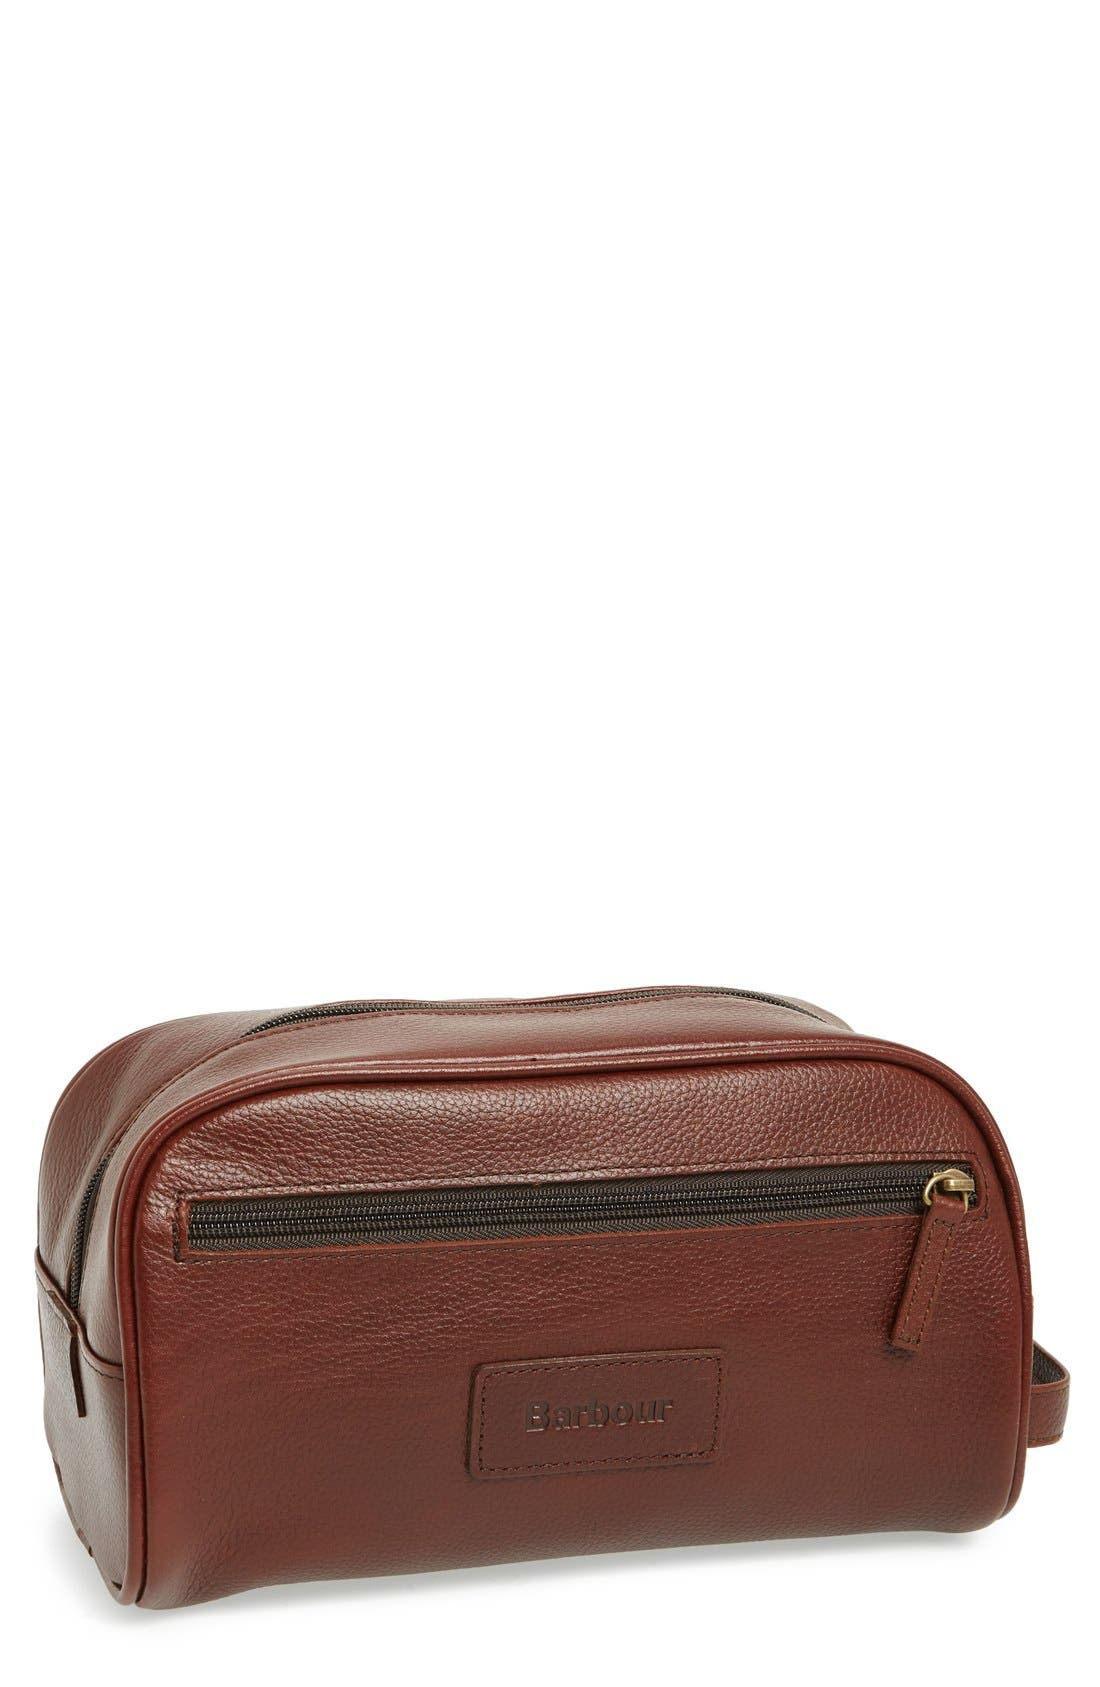 BARBOUR, Leather Travel Kit, Main thumbnail 1, color, DARK BROWN